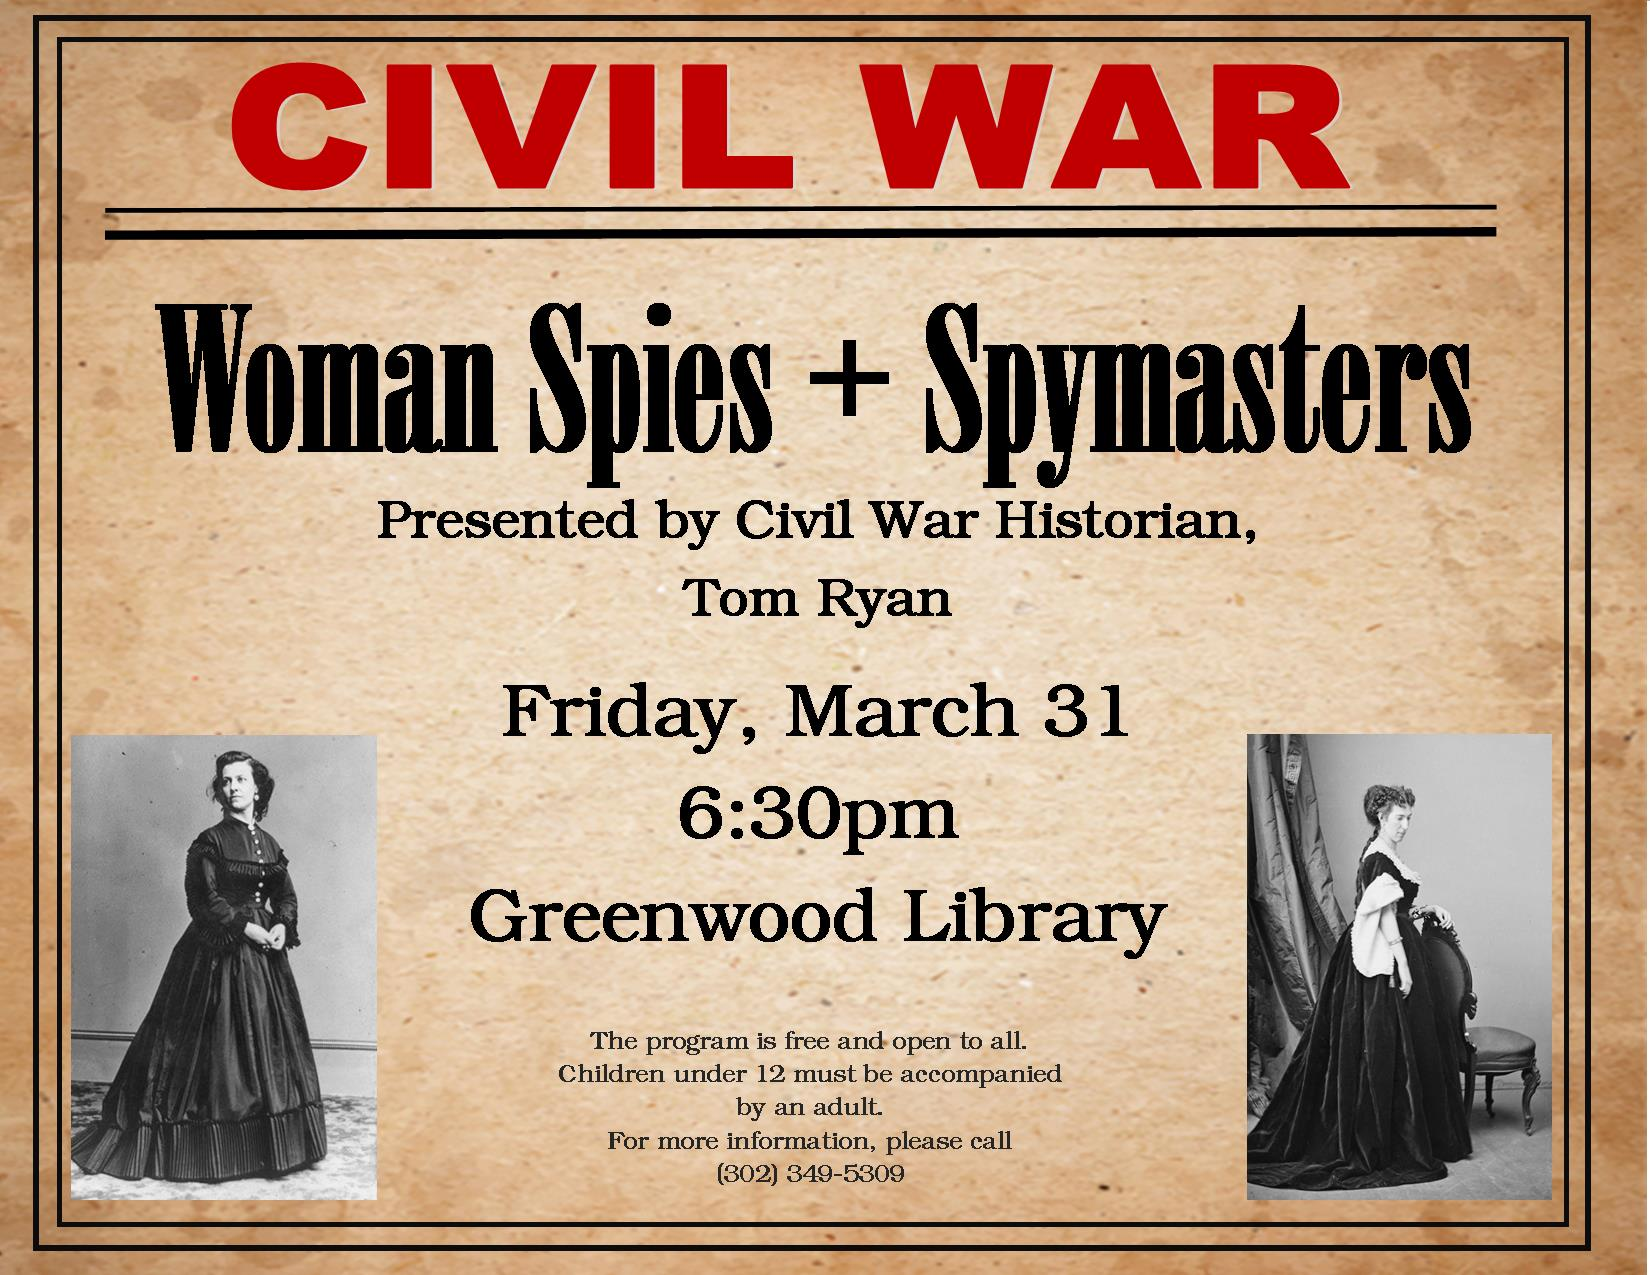 women spies of the civil war A history of women in the military from the revolutionary war to present day information about sexual harassment issues rose o'neal greenhow was a leader in washington society and one of the most renowned spies in the civil war.